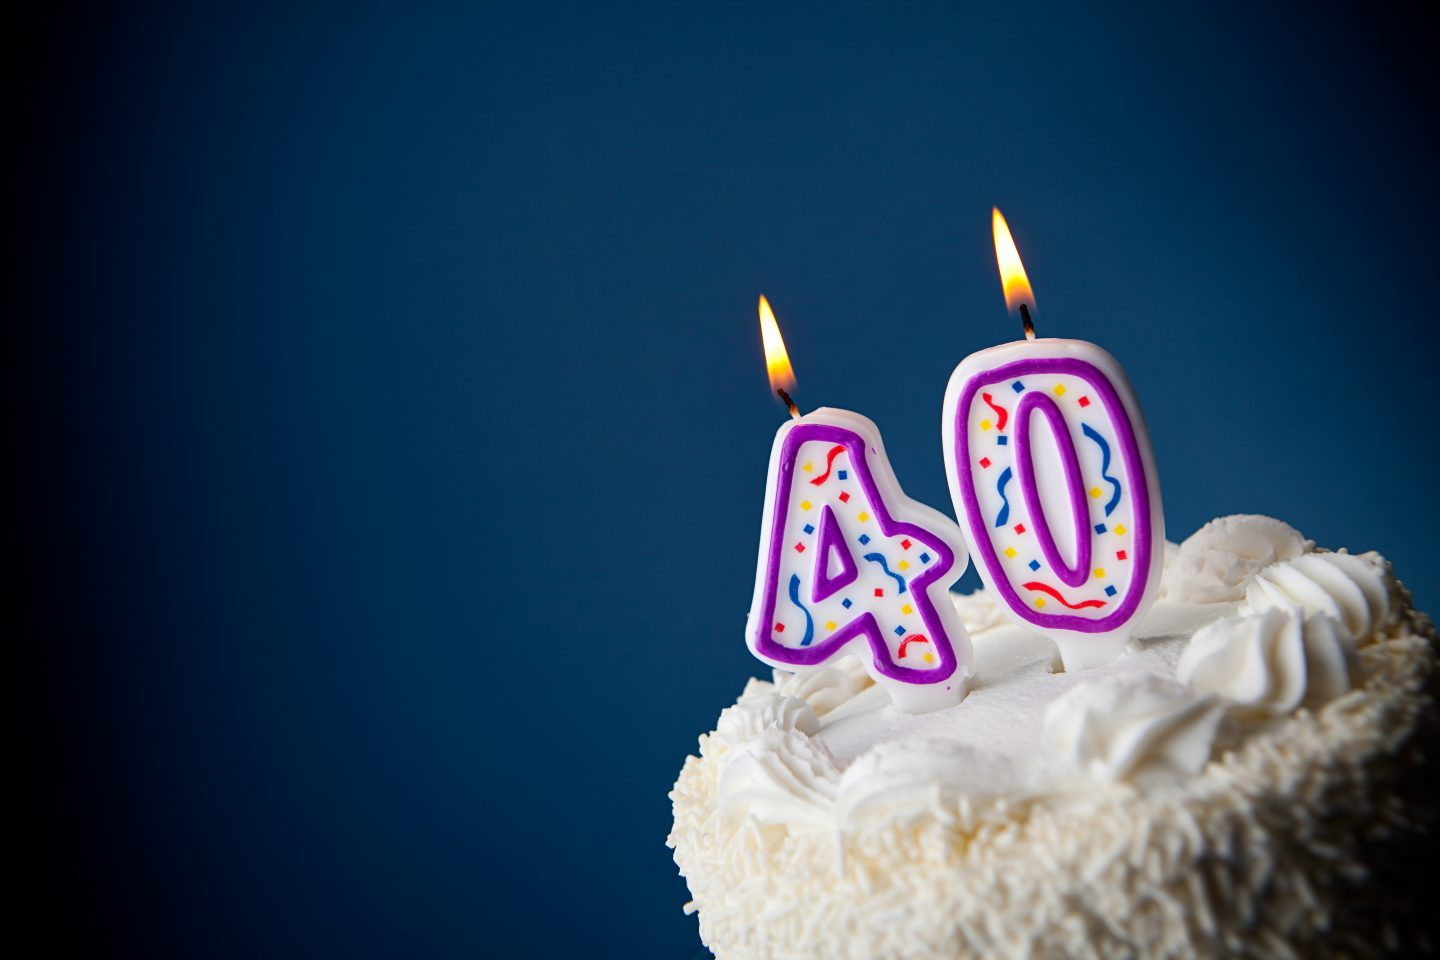 40 Things I Will Do In My 40th Year